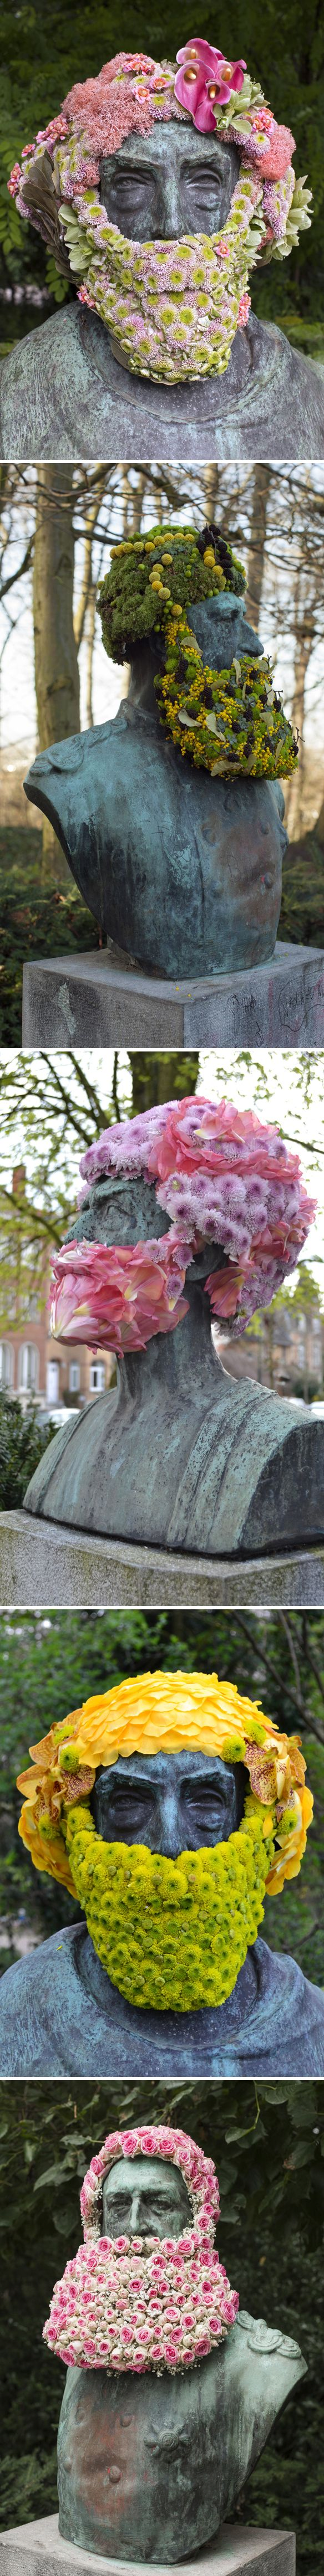 geoffroy mottart - flower interventions in brussels <3